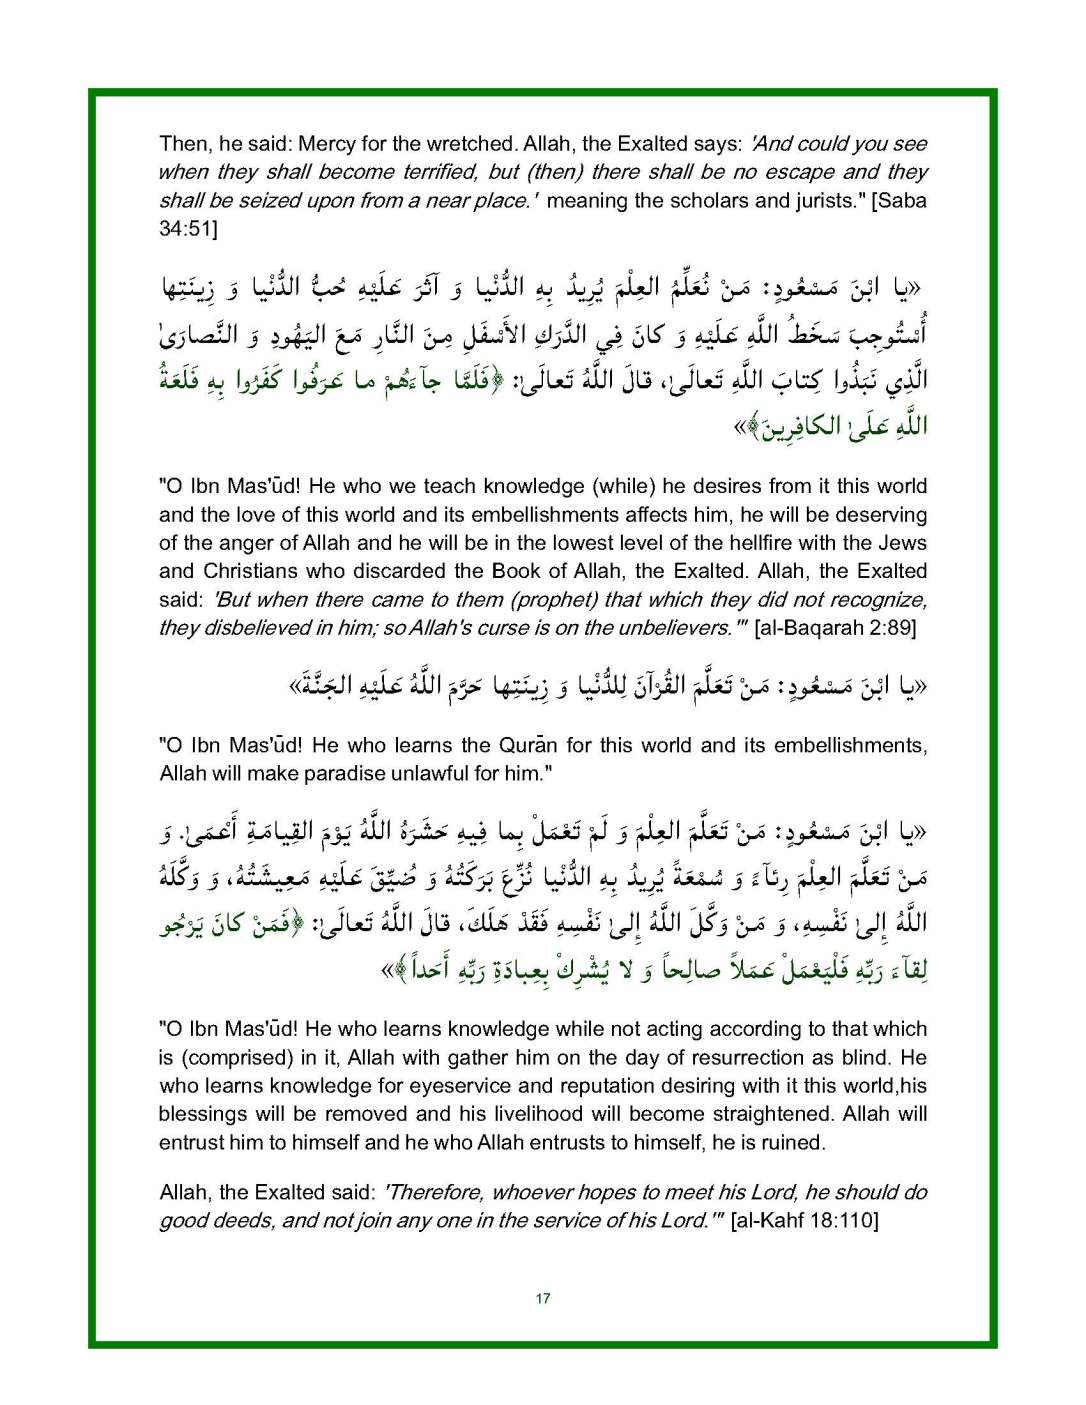 Spiritual-Advice-of-the-Messenger-of-Allah-for-Ibn-Masud-unlocked_Page_17